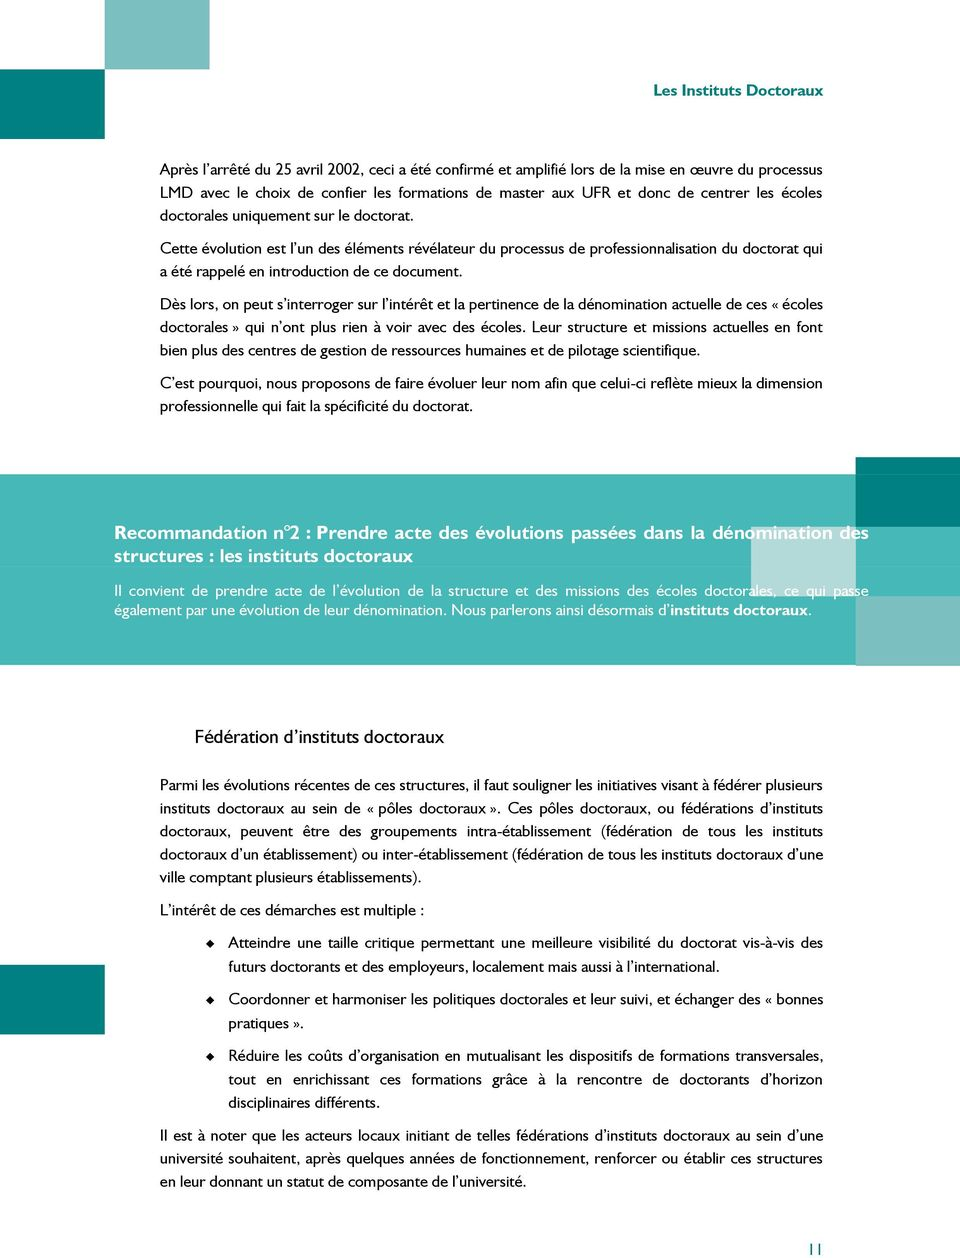 Cette évolution est l un des éléments révélateur du processus de professionnalisation du doctorat qui a été rappelé en introduction de ce document.